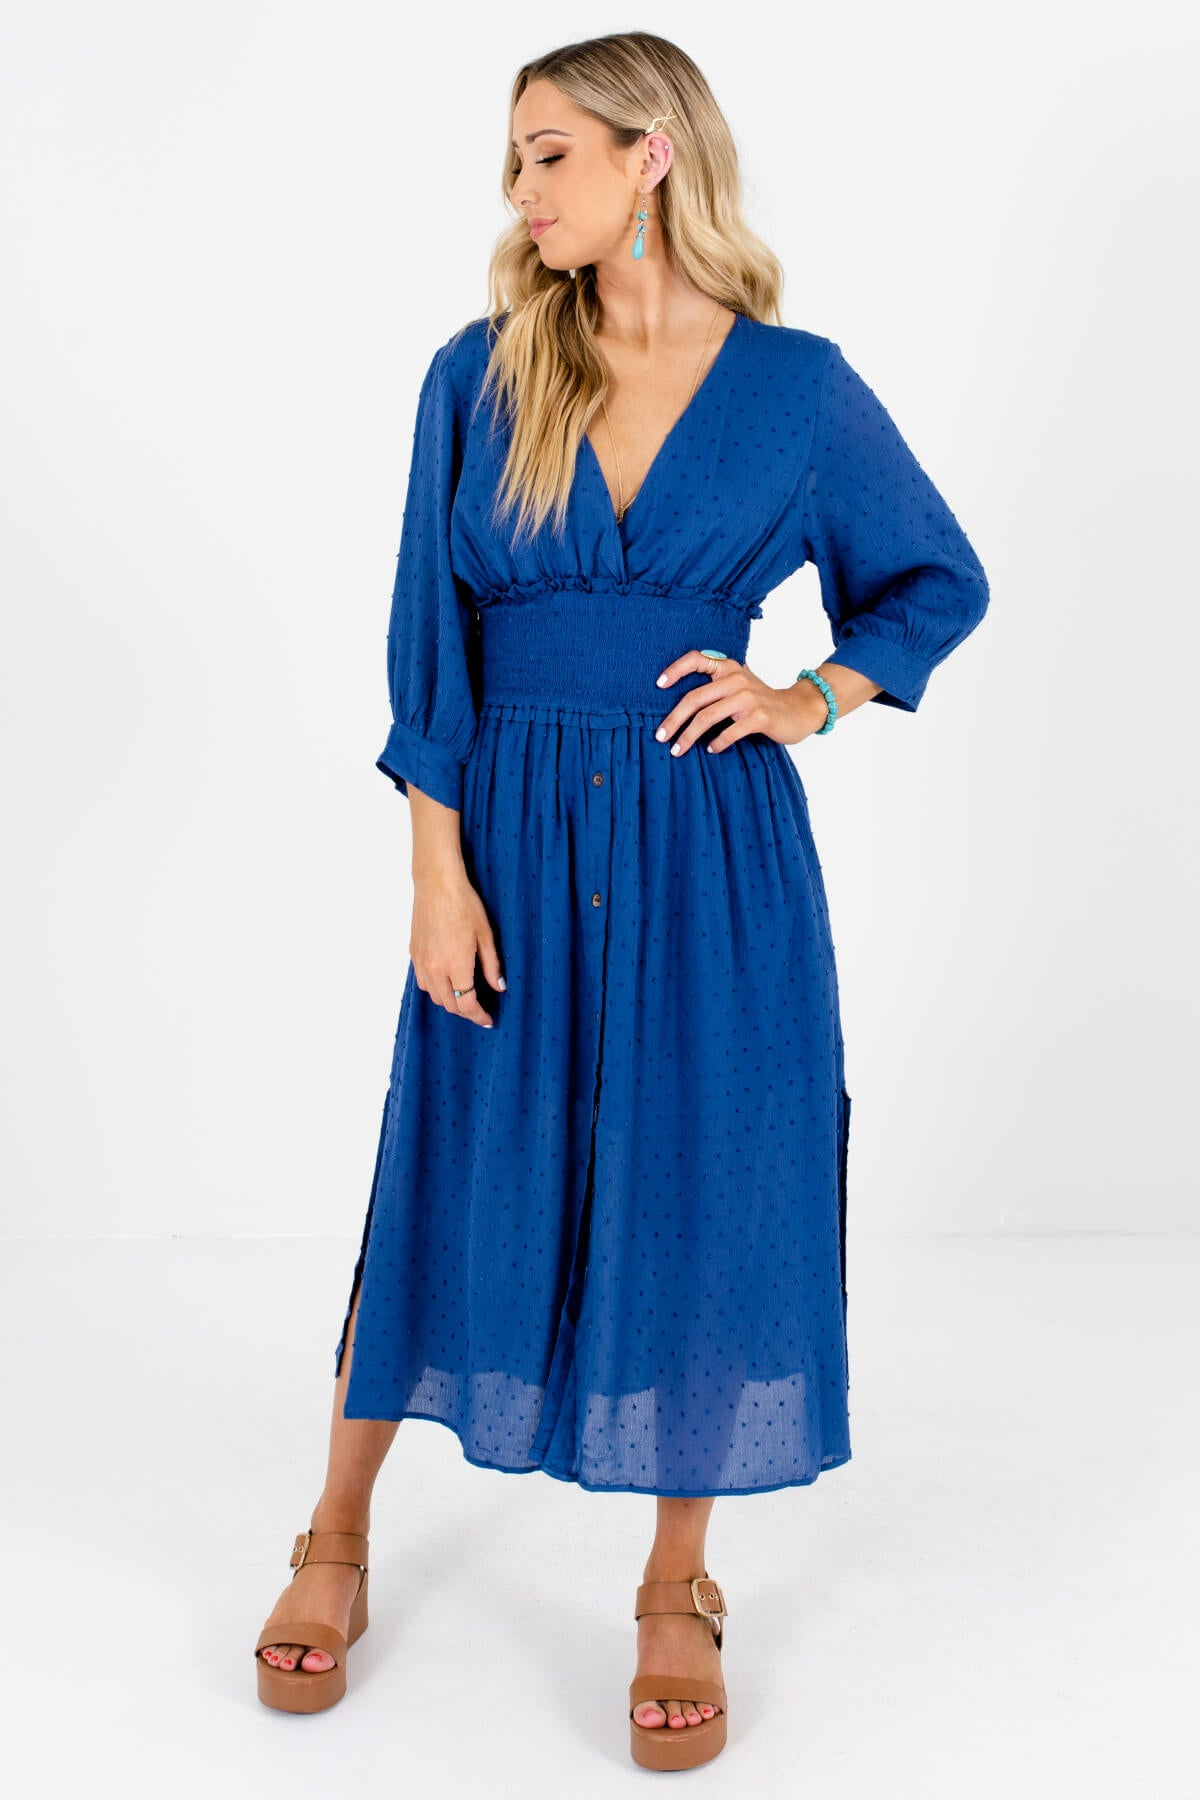 Blue Polka Dot Textured Material Boutique Midi Dresses for Women